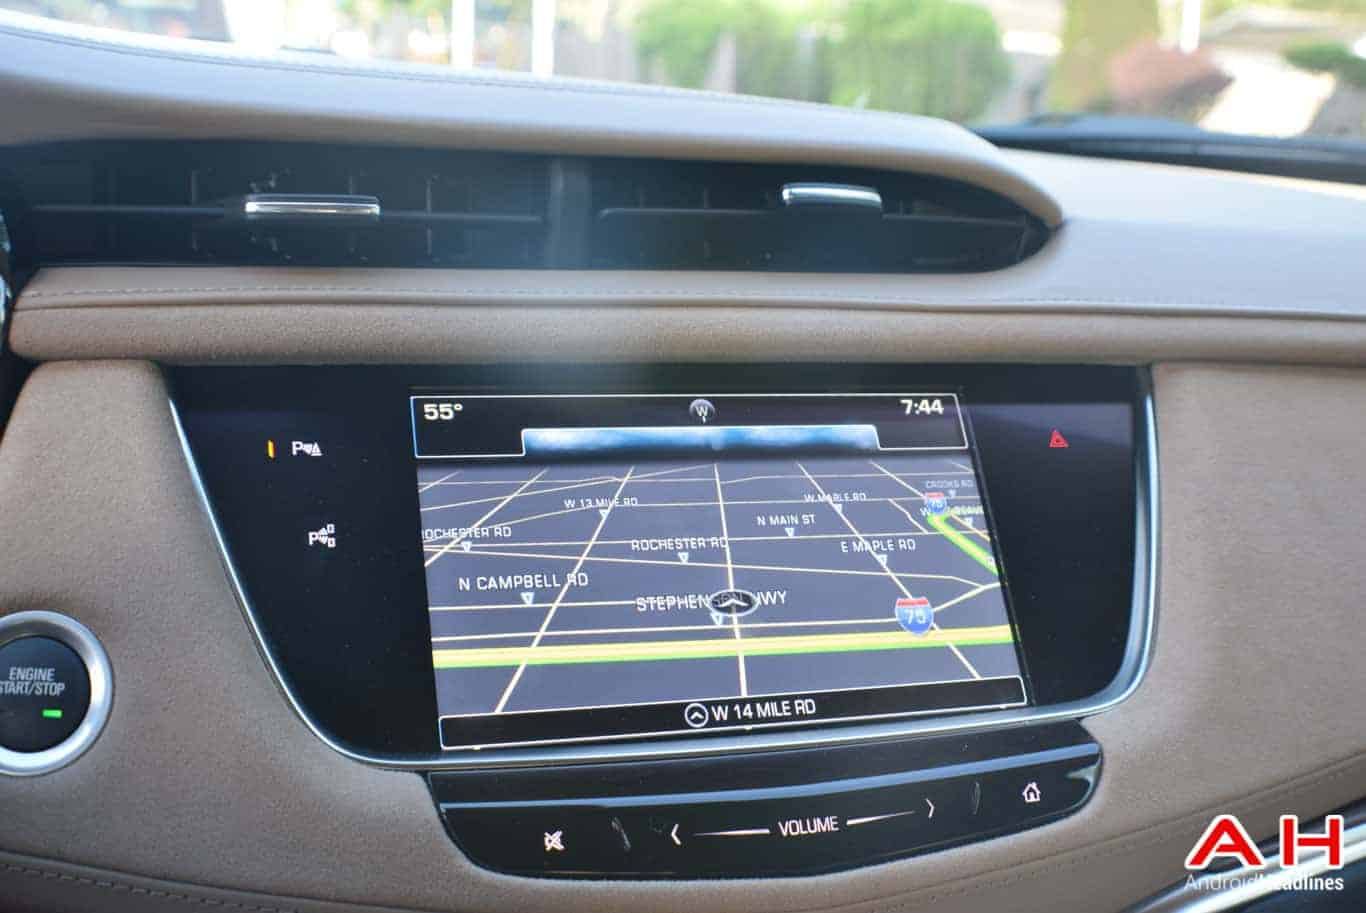 2017 Cadillac XT5 Android Auto Review AM AH 104